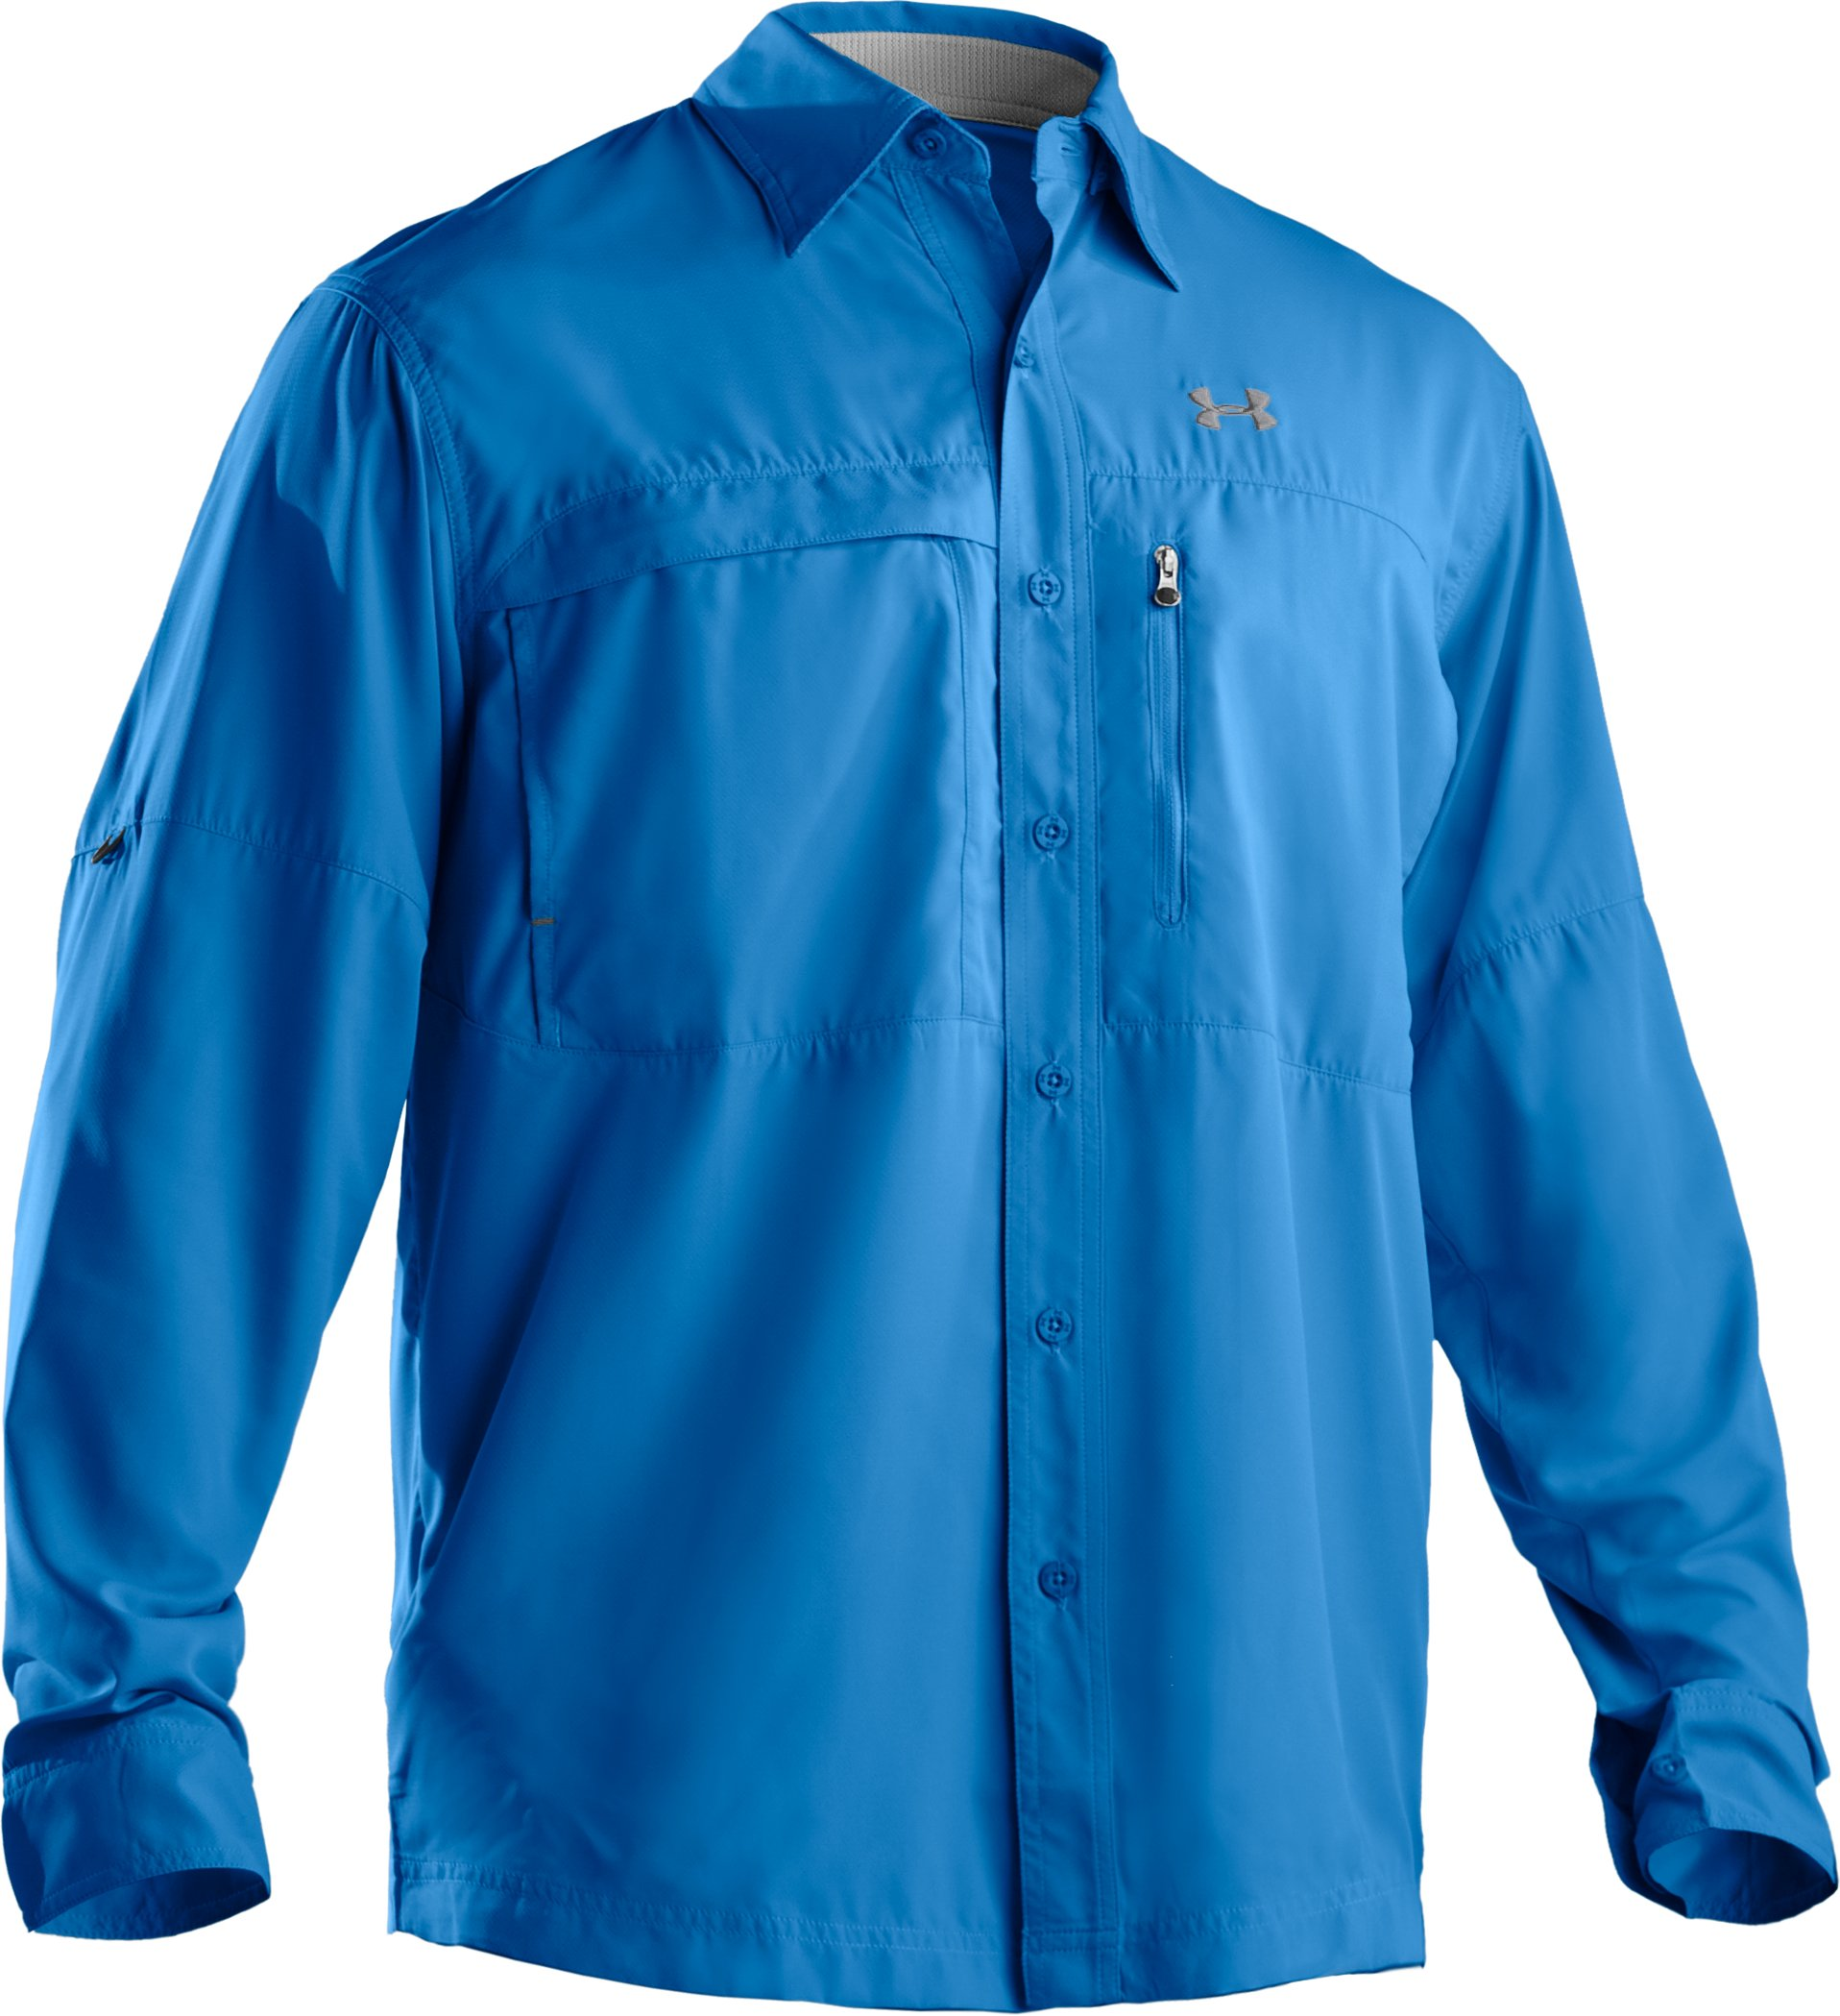 Men's Flats Guide Long Sleeve Shirt, St. Tropez